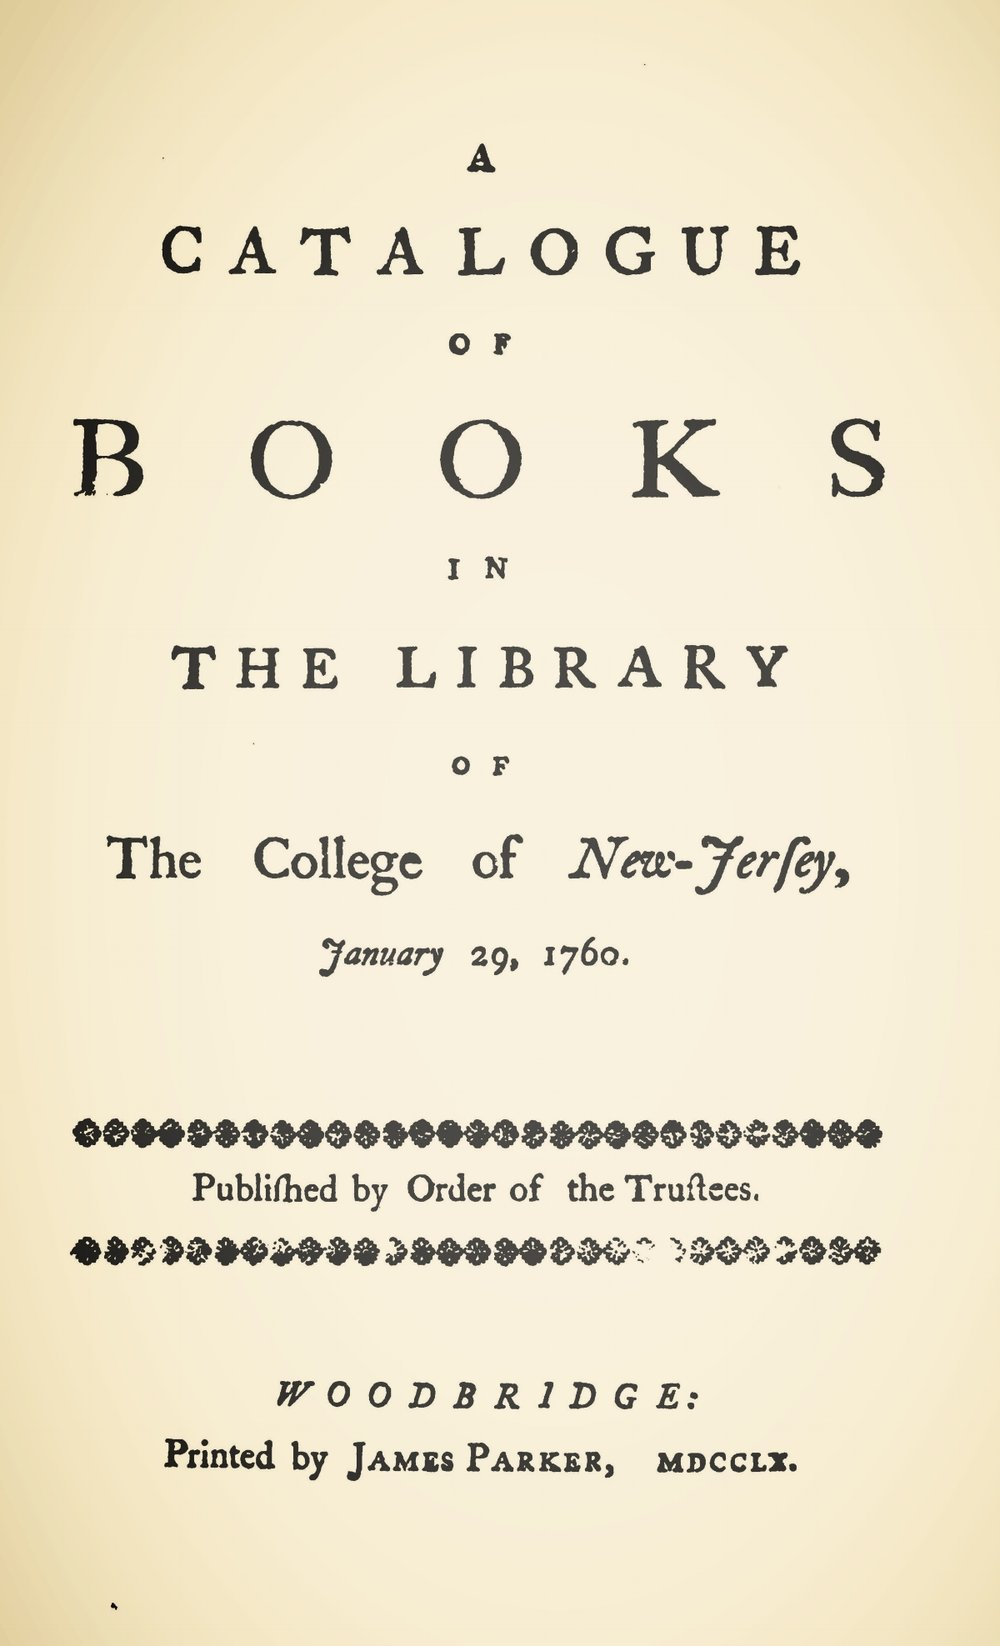 Davies, Samuel, A Catalogue of Books in the Library of the College of New Jersey Title Page.jpg